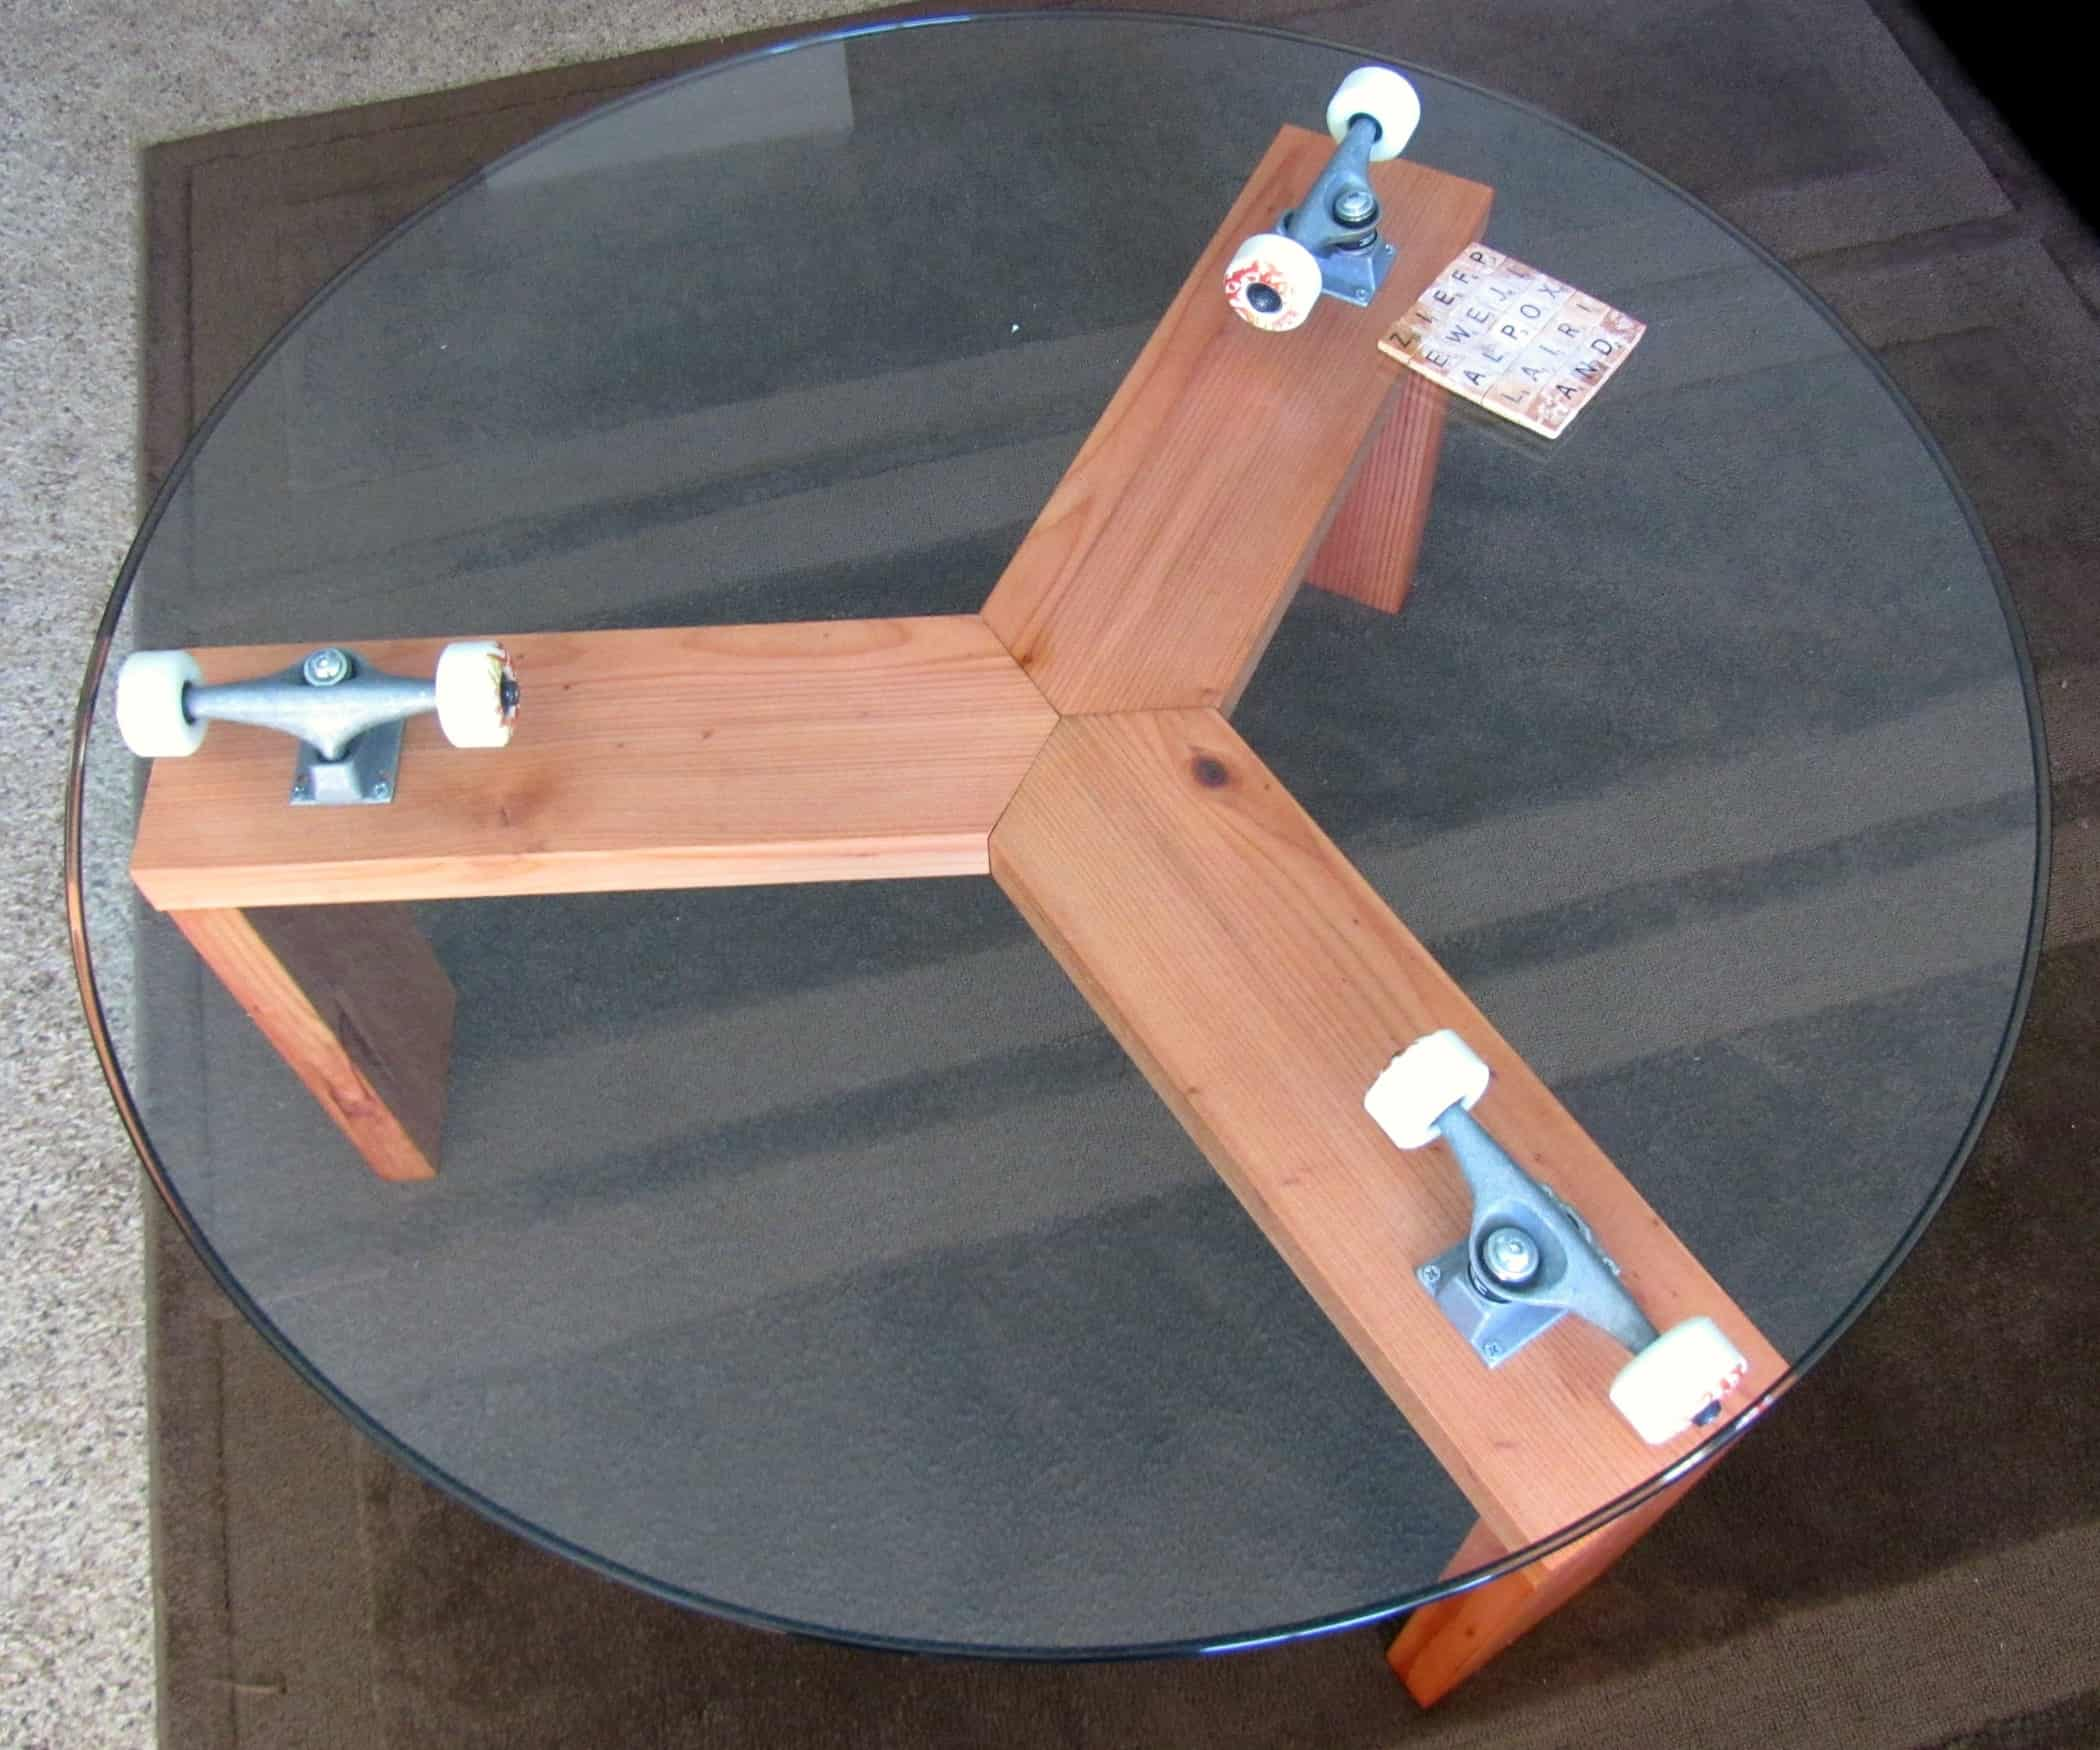 15 cool crafts made with upcycled skateboards lazy susan table top on skateboard wheels solutioingenieria Choice Image